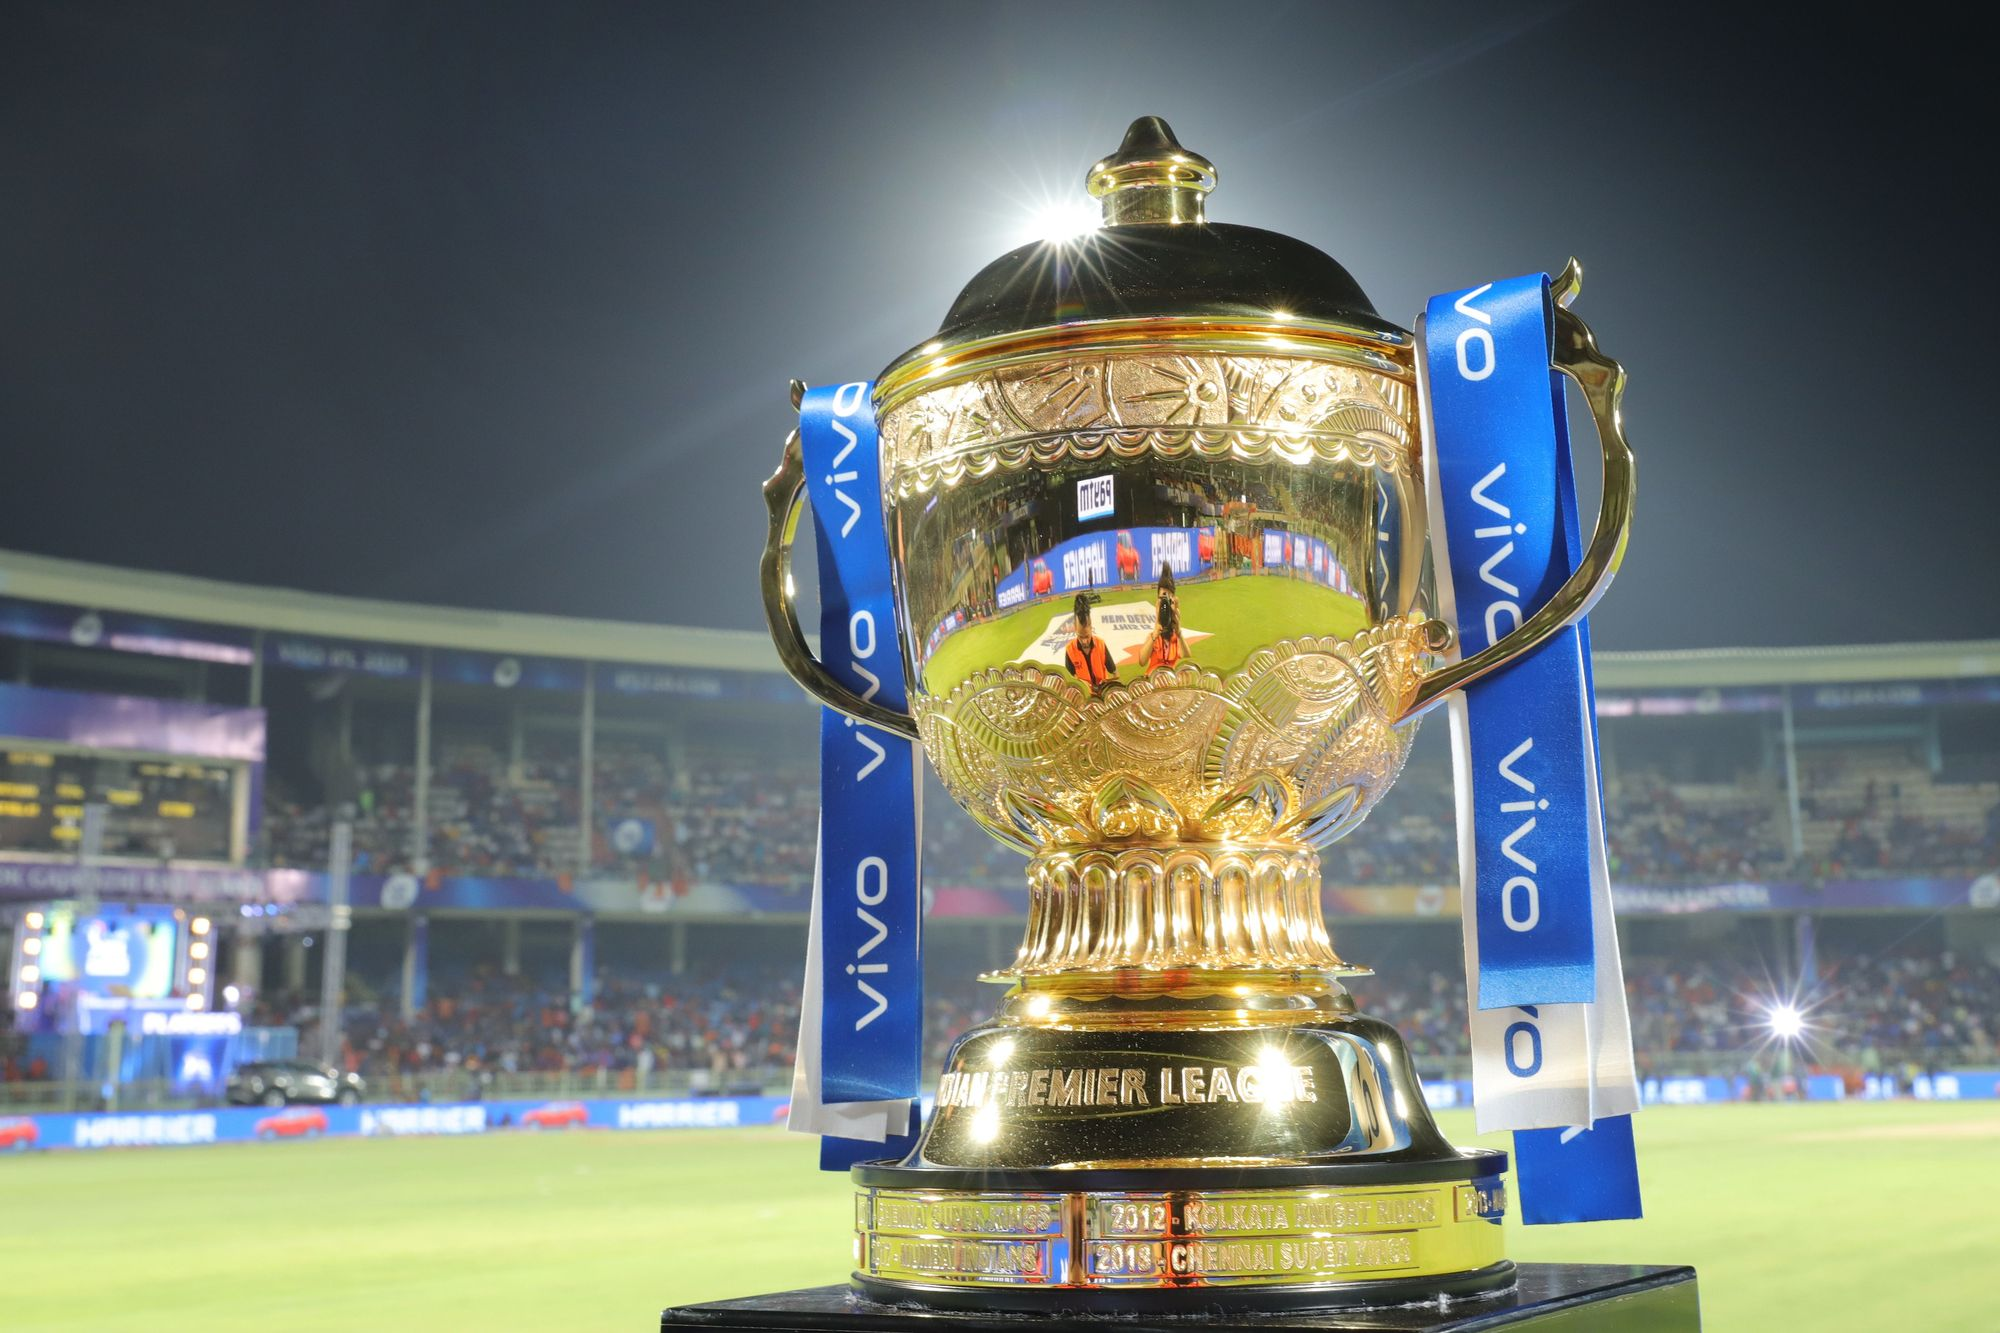 IPL 2020 is scheduled to start on September 19 in the UAE | IPL